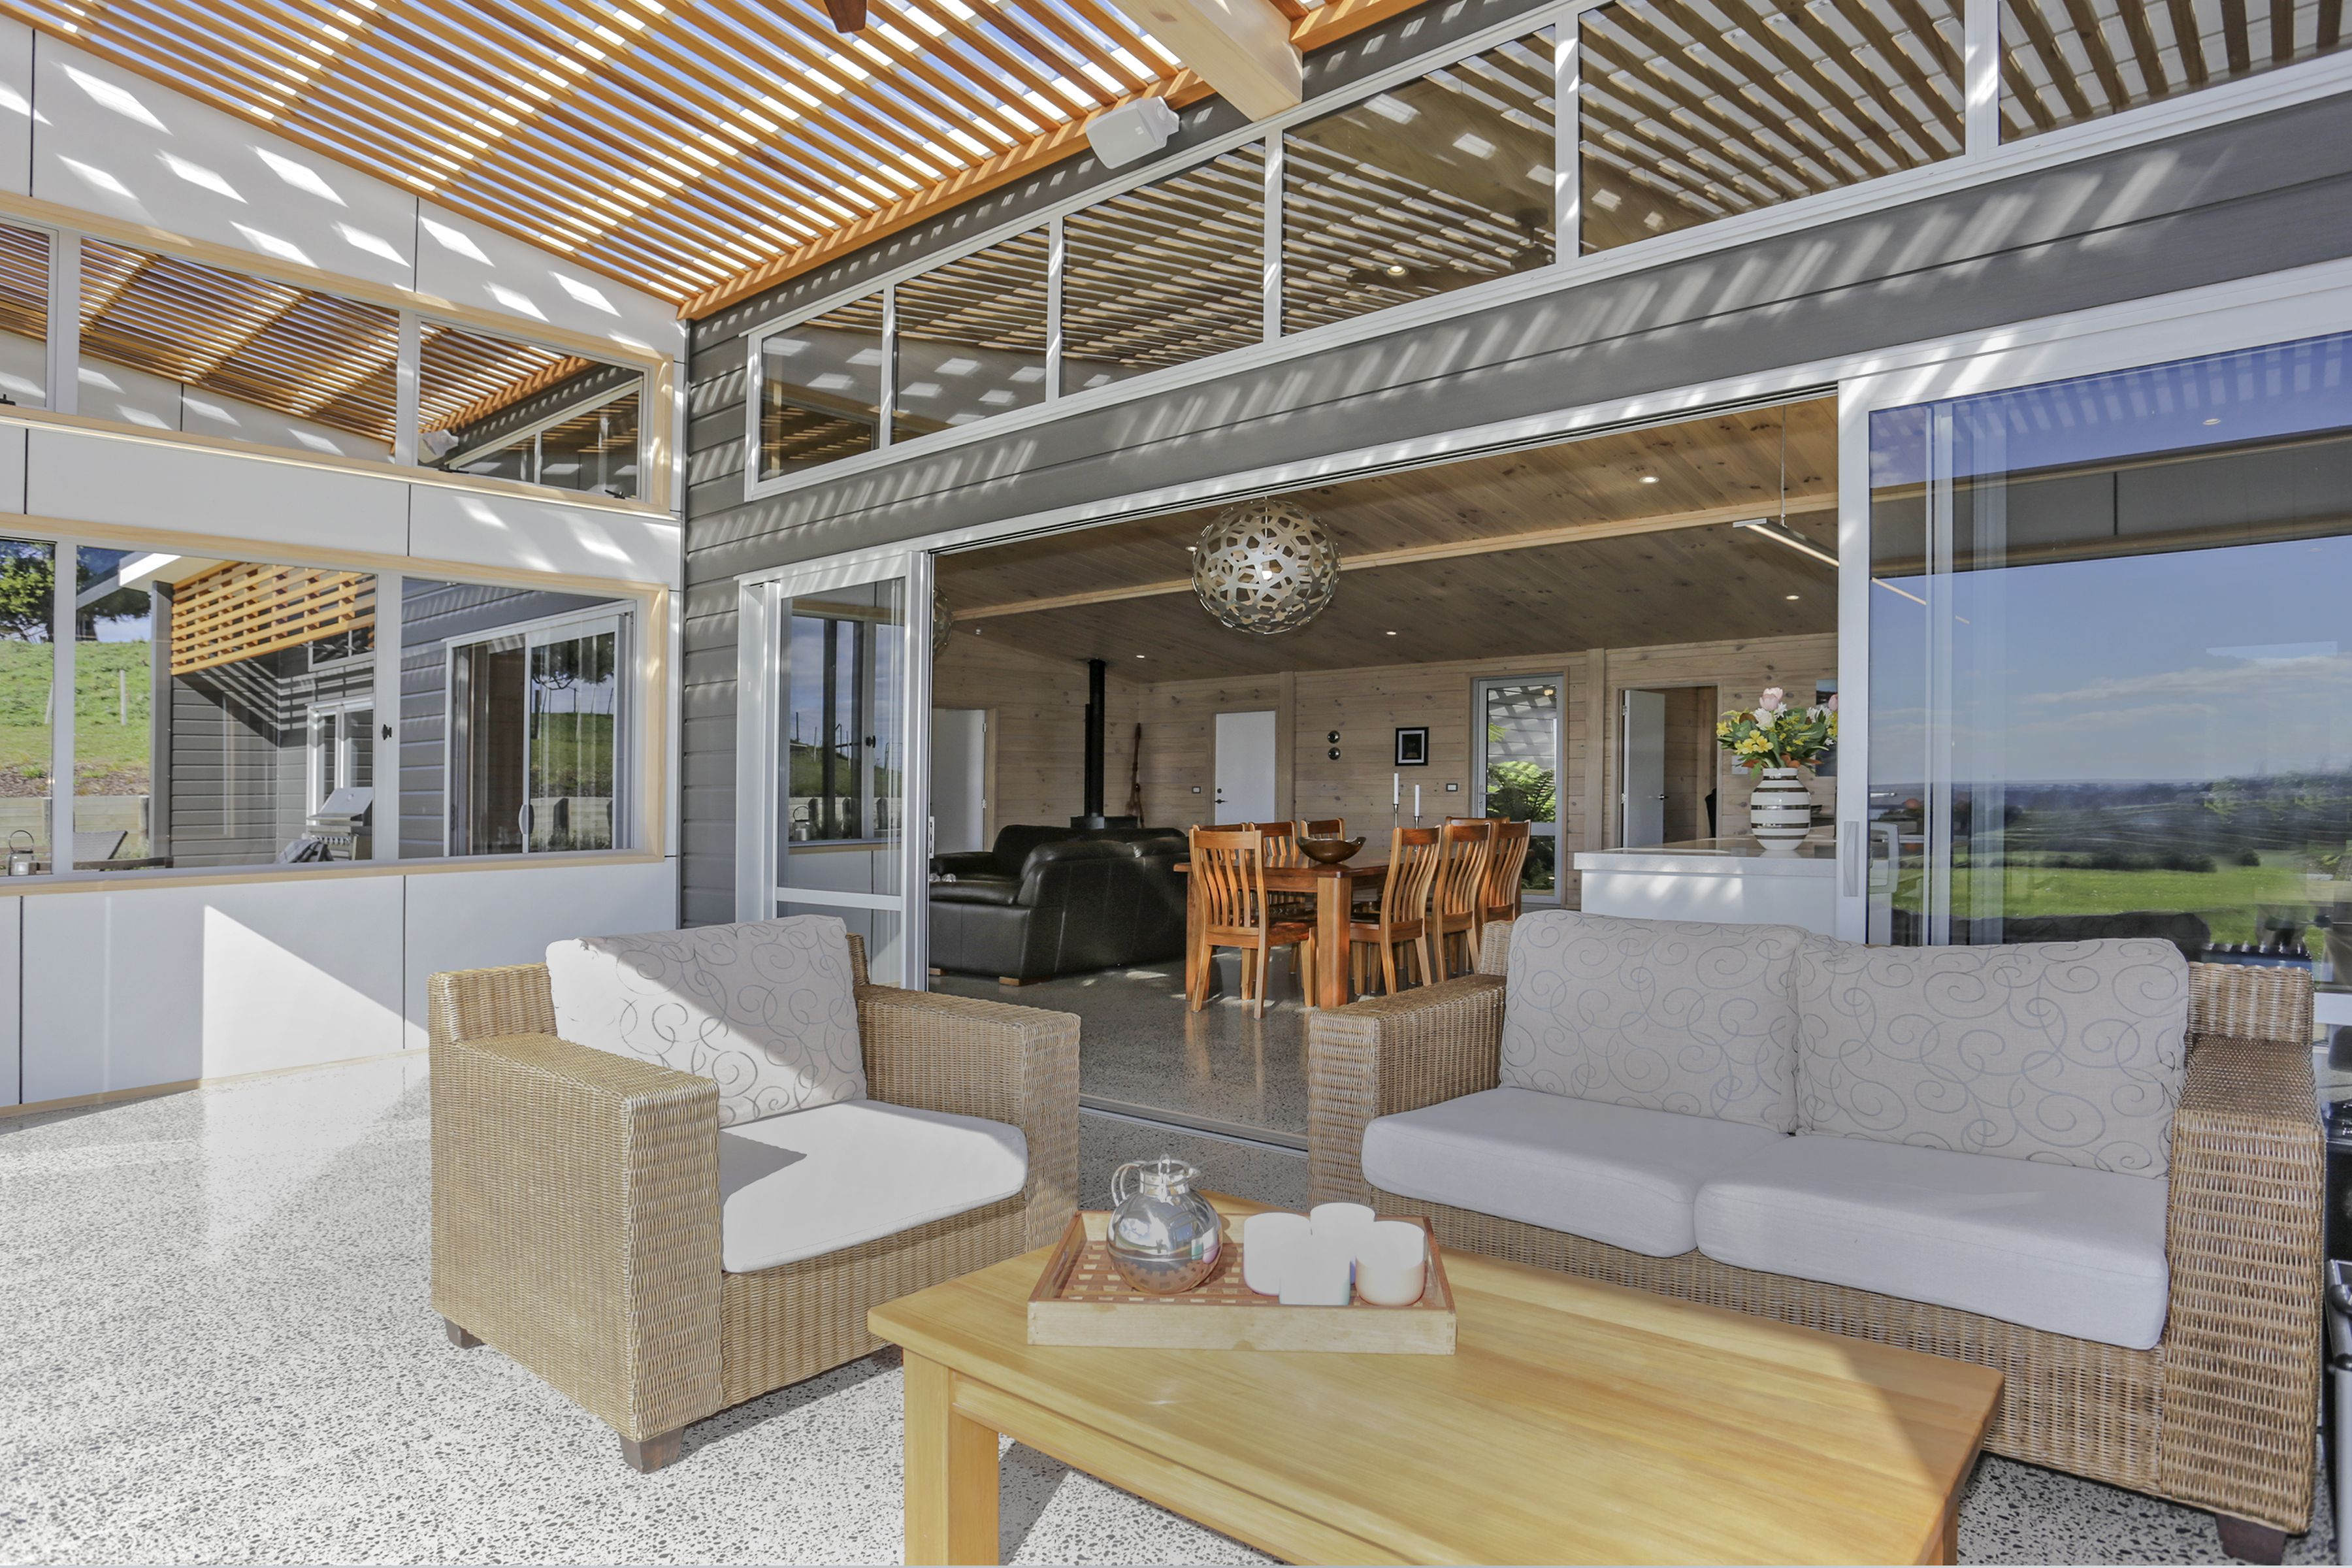 Indoor / outdoor living at its best! (With images) | New ... on Bespoke Outdoor Living id=35415